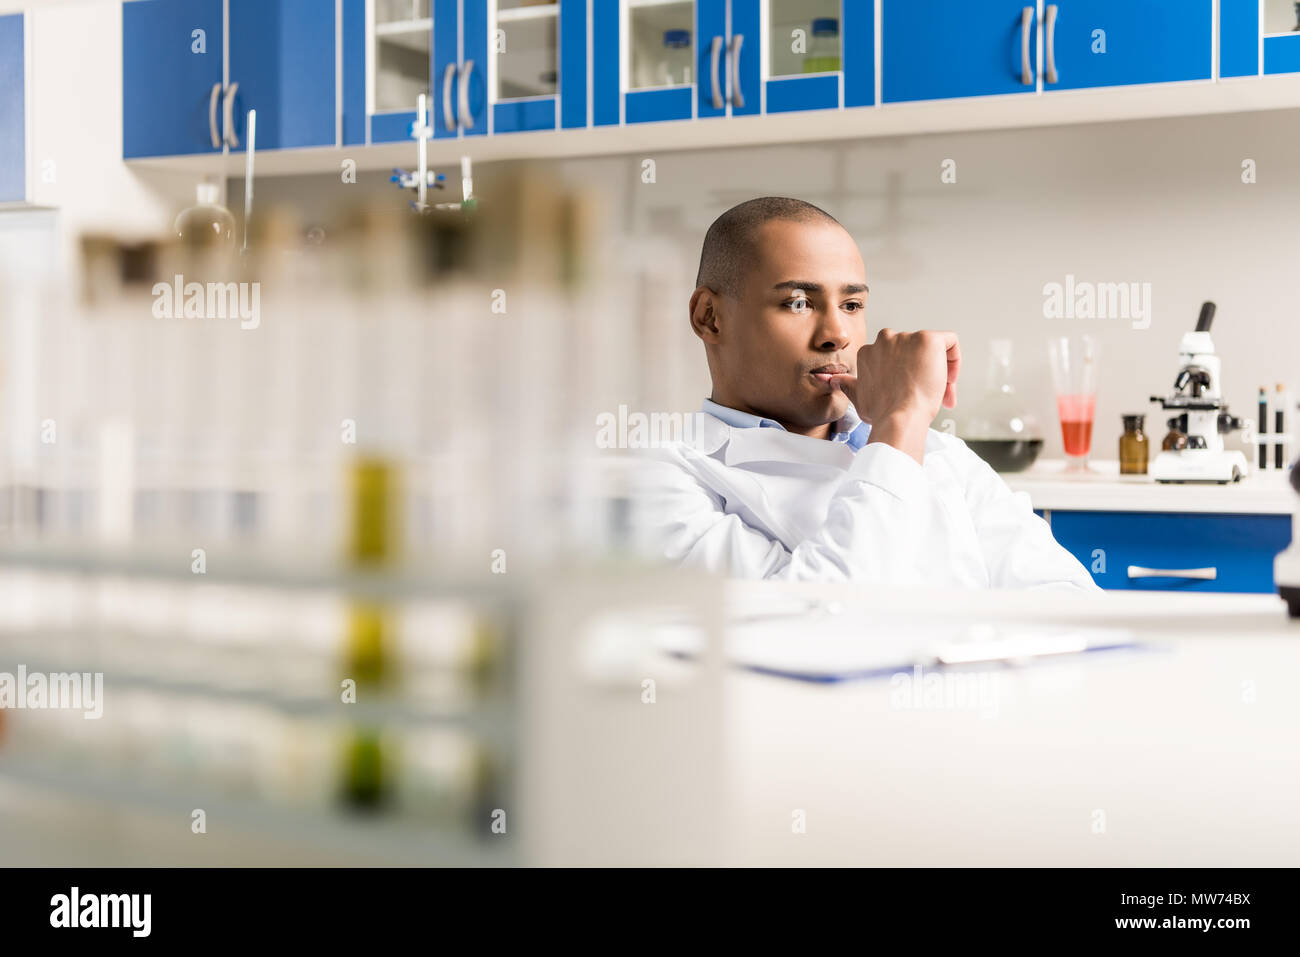 Male scientist during work at modern biological laboratory sitting with hand on chin - Stock Image